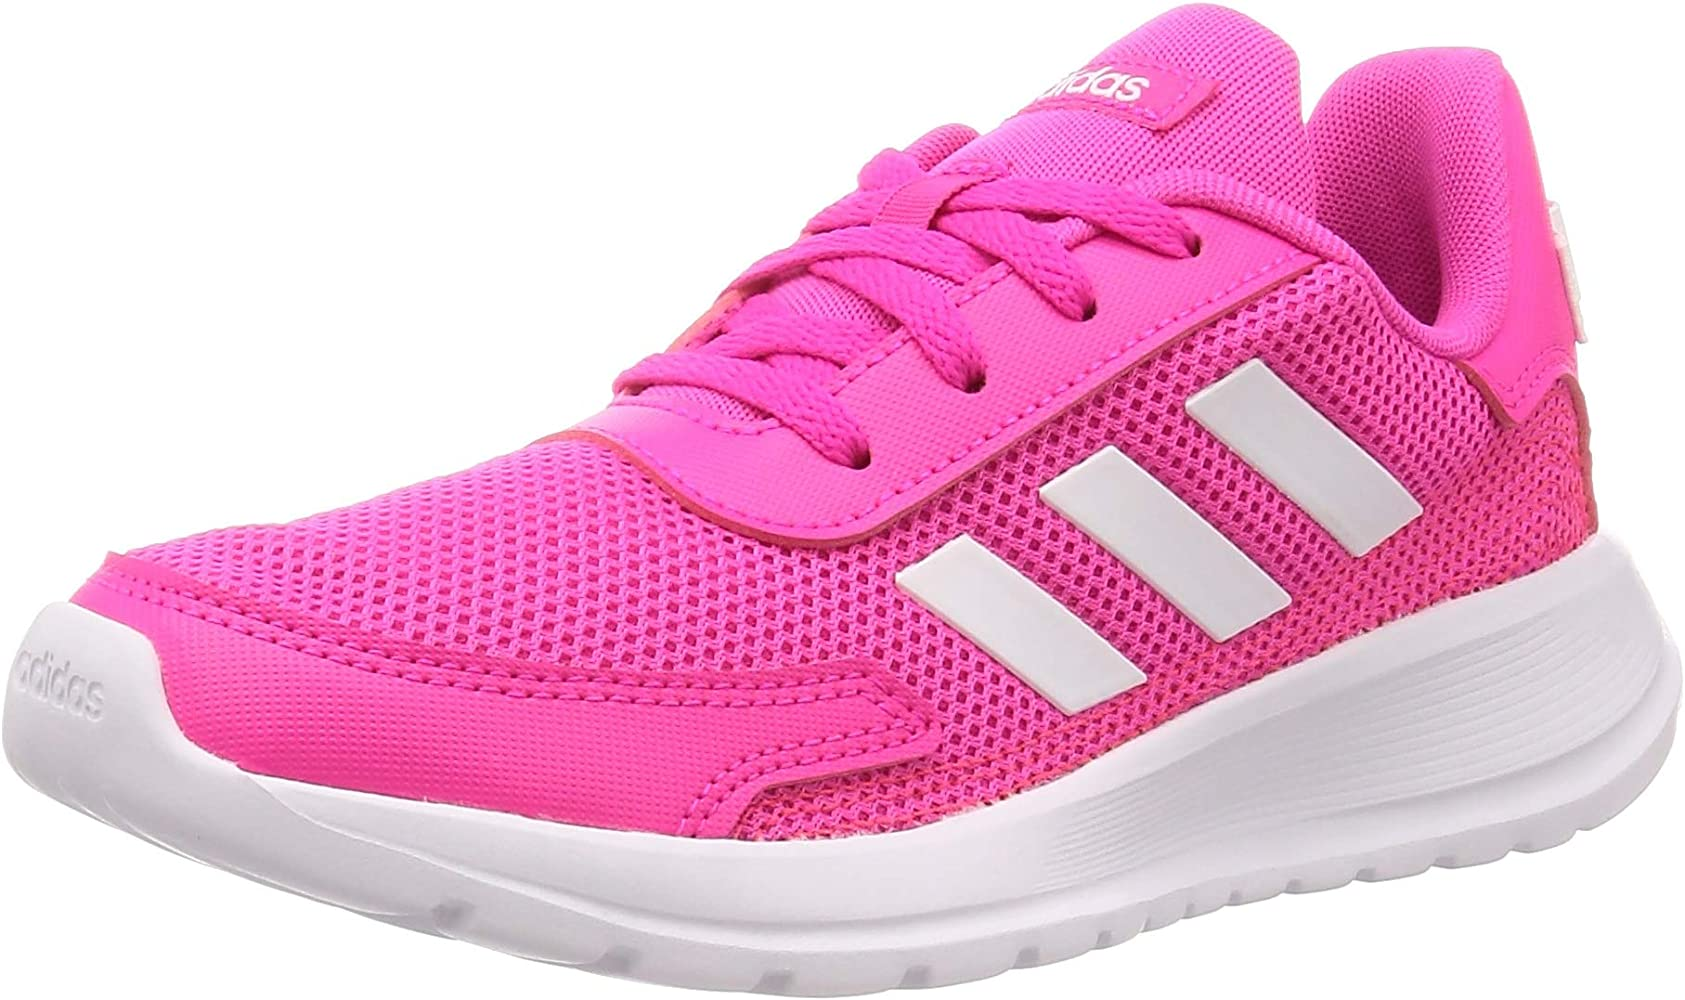 Adidas TENSAUR Run K, Zapatillas Running Unisex Infantil, Rose Flash Blanc Gris Clair: Amazon.es: Zapatos y complementos